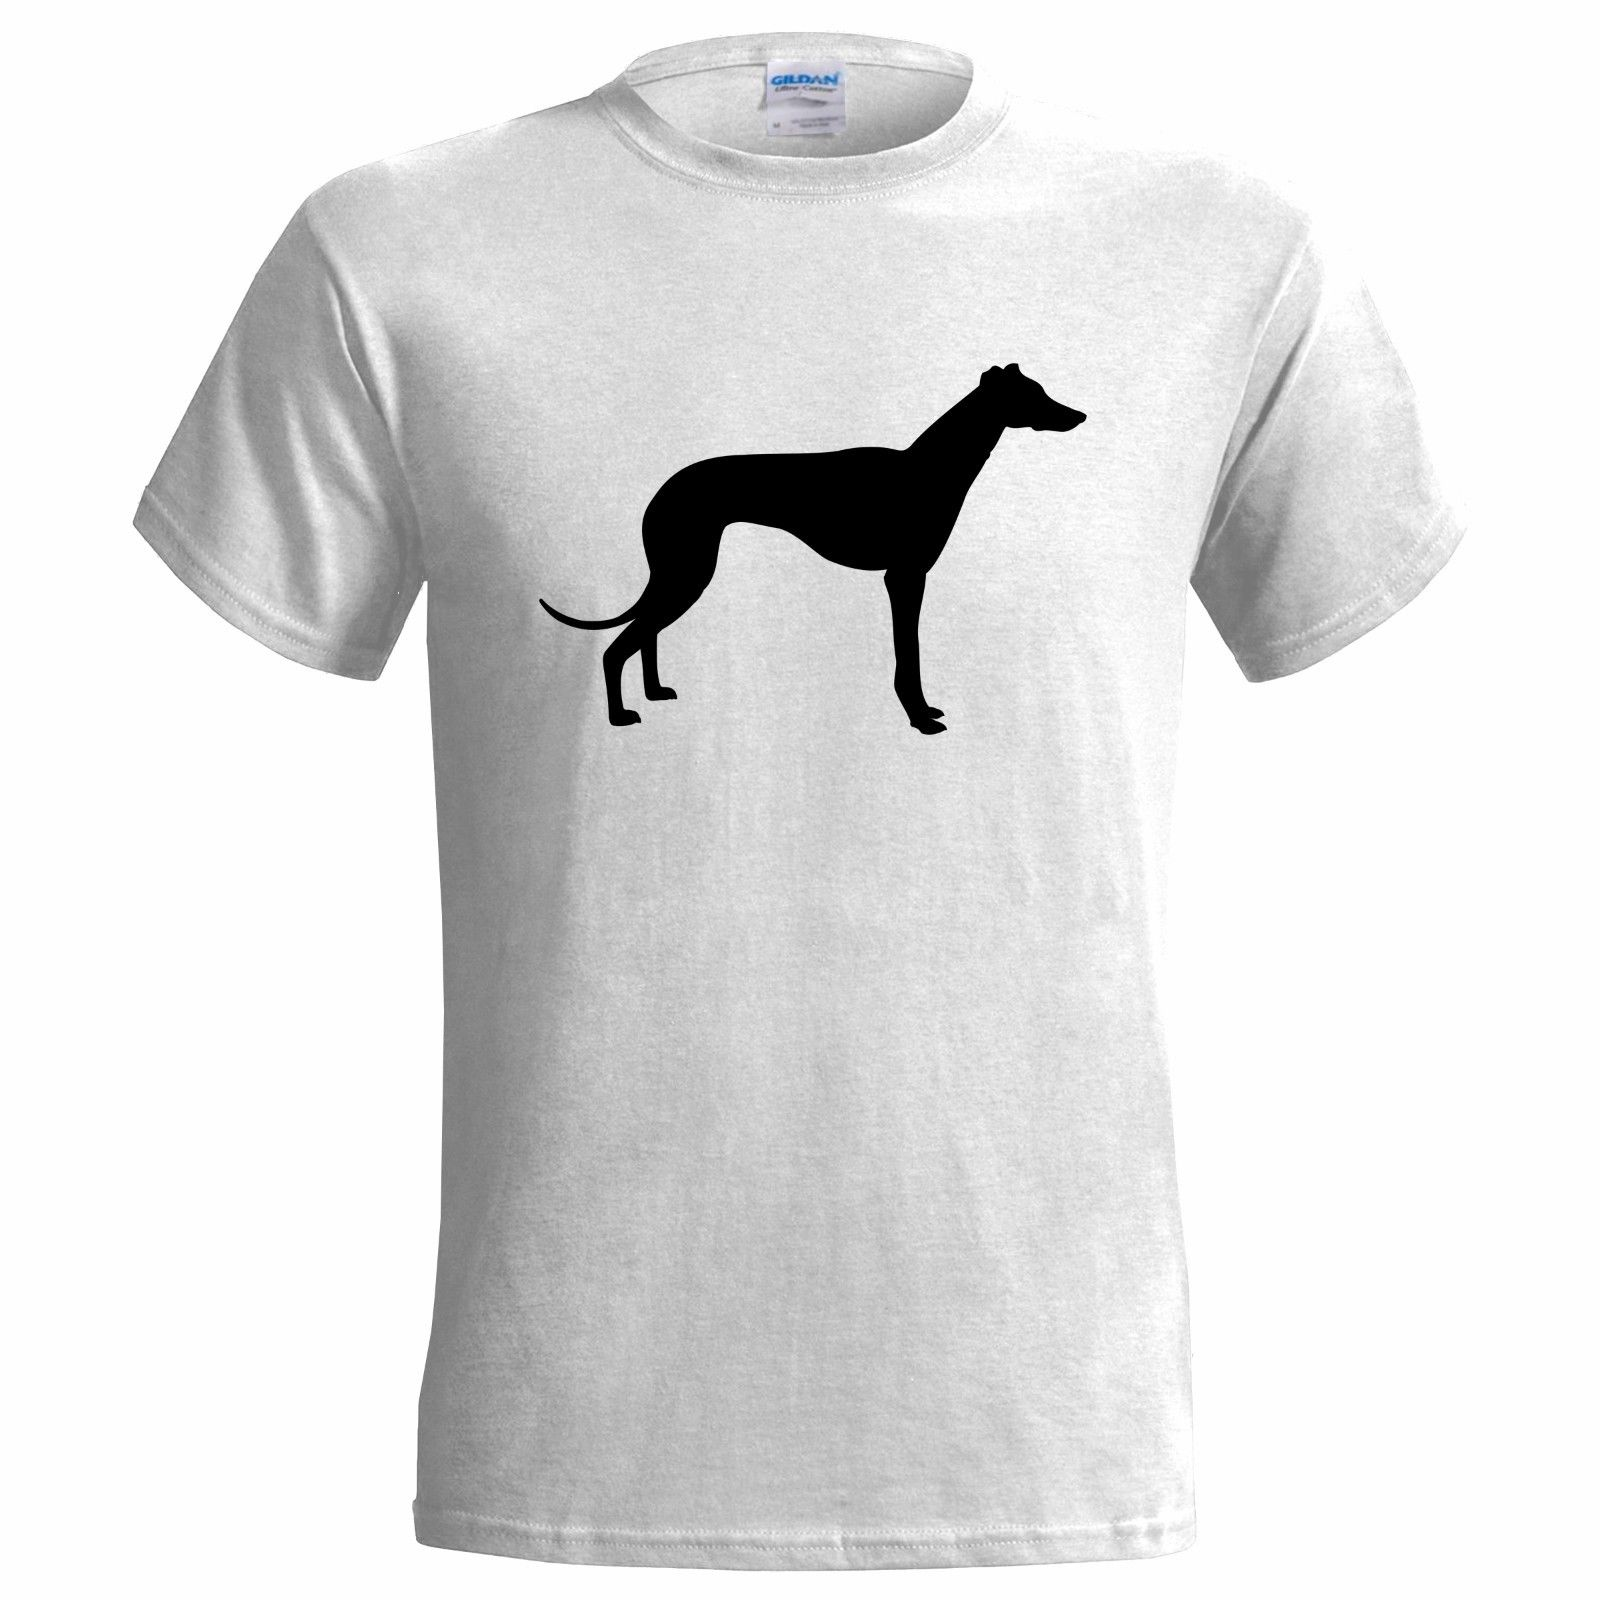 GREYHOUND <font><b>DOG</b></font> SILHOUETTE MENS T SHIRT PET CANINE PRESENT <font><b>ART</b></font> ANIMAL HOUND Cartoon t shirt men Unisex New Fashion <font><b>tshirt</b></font> Loose image